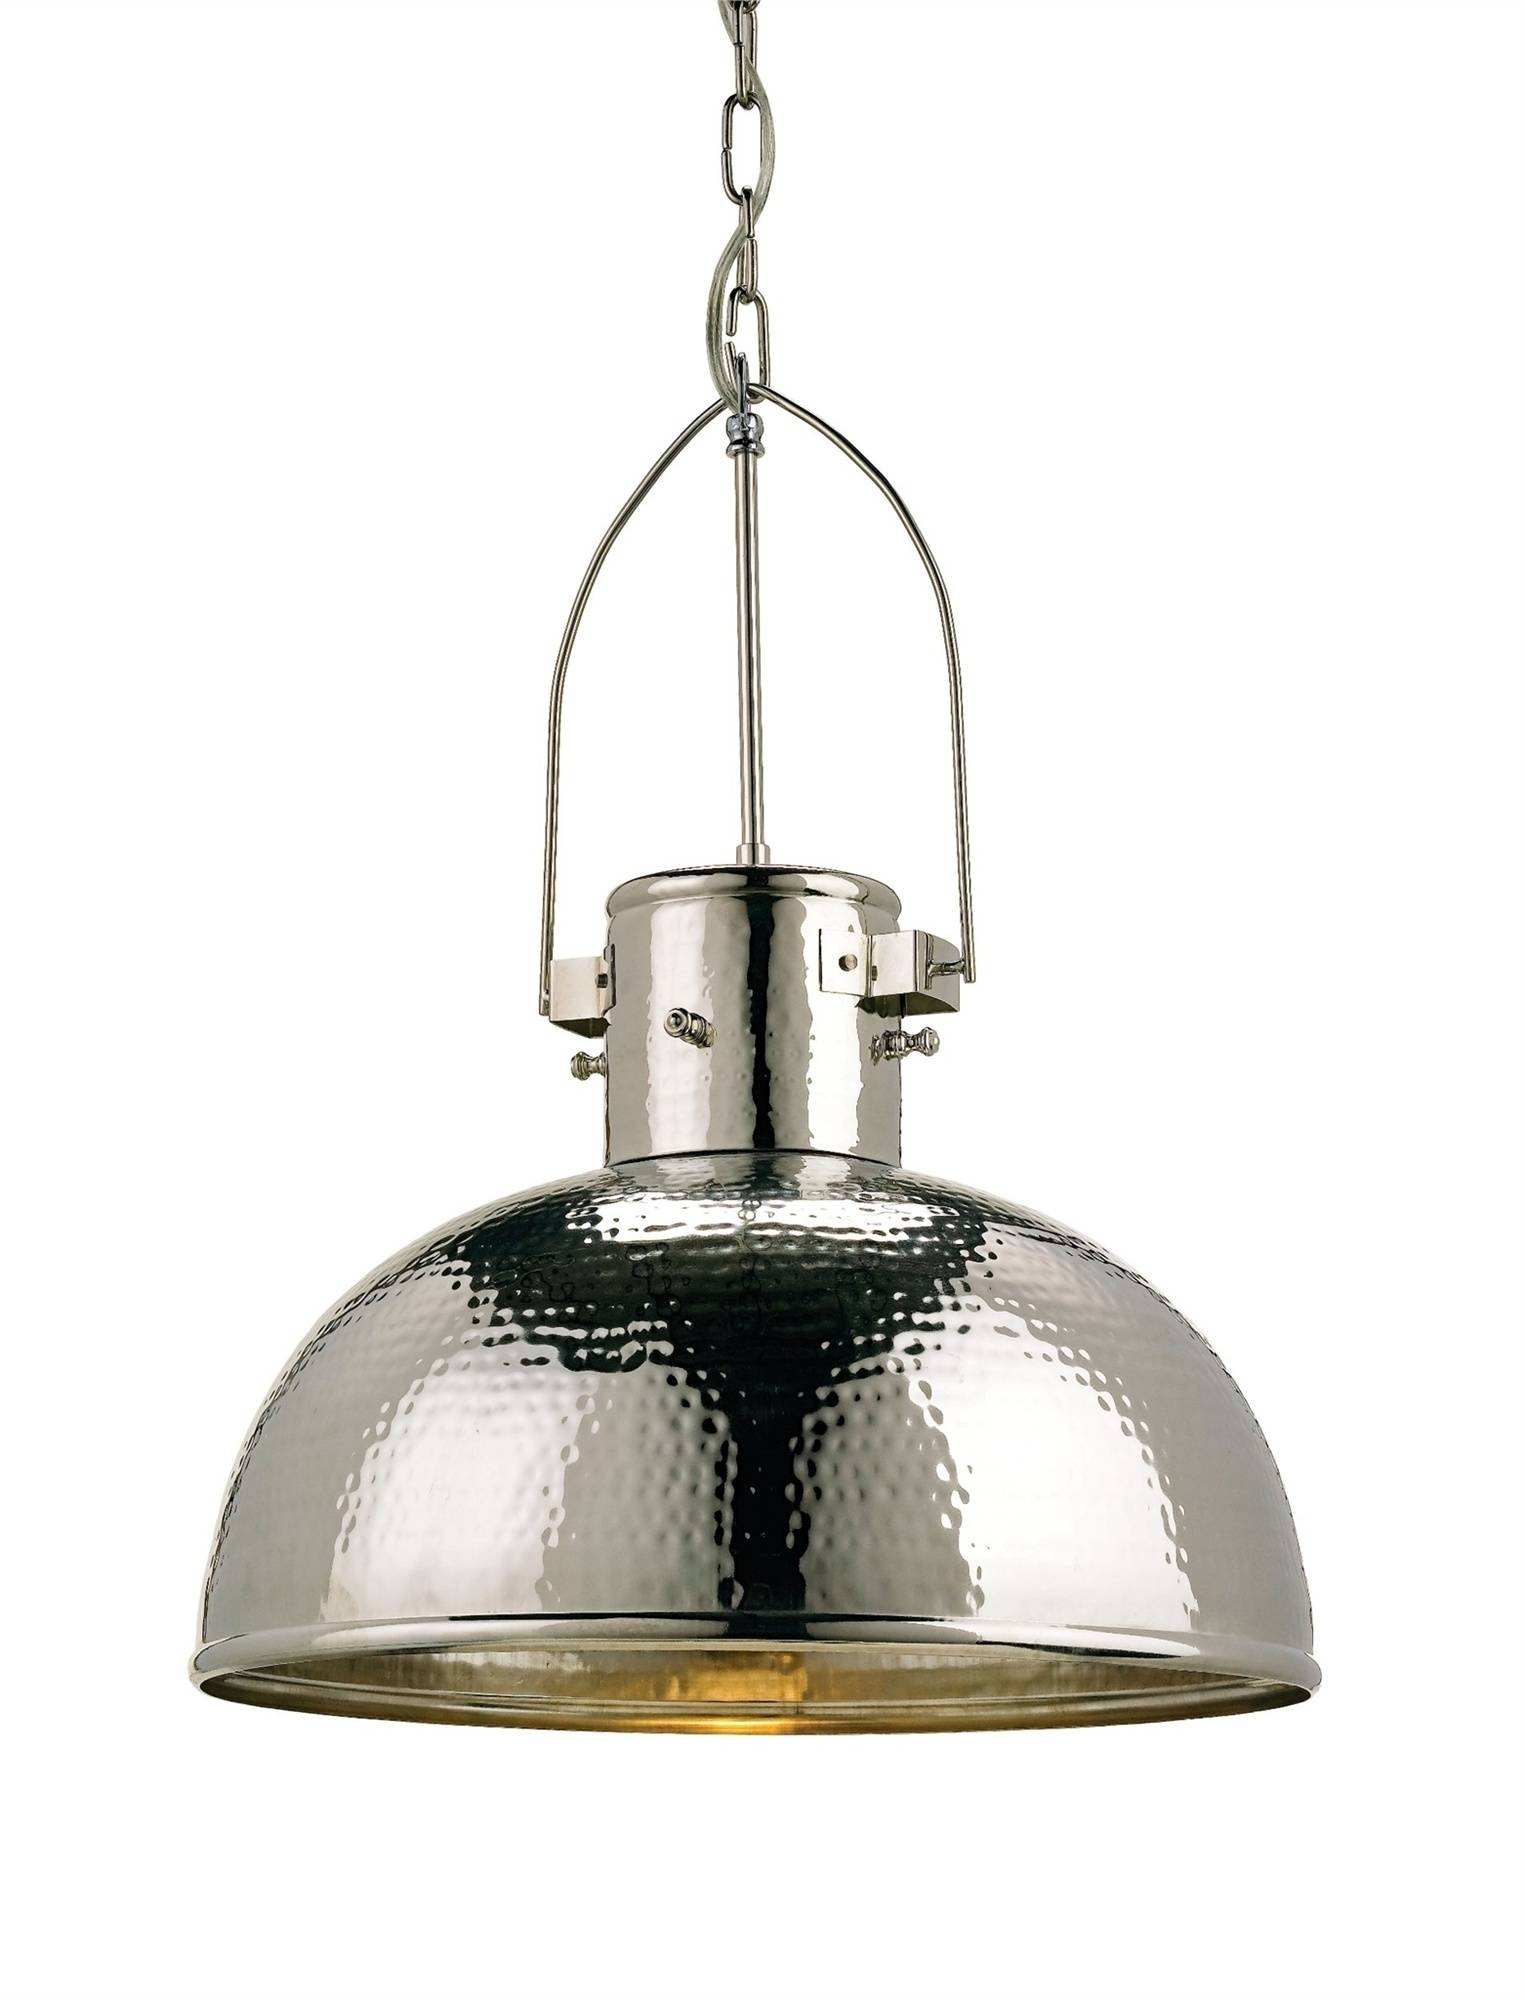 Syllabus Pendant Light | Currey And Company for Hammered Pendant Lights (Image 14 of 15)